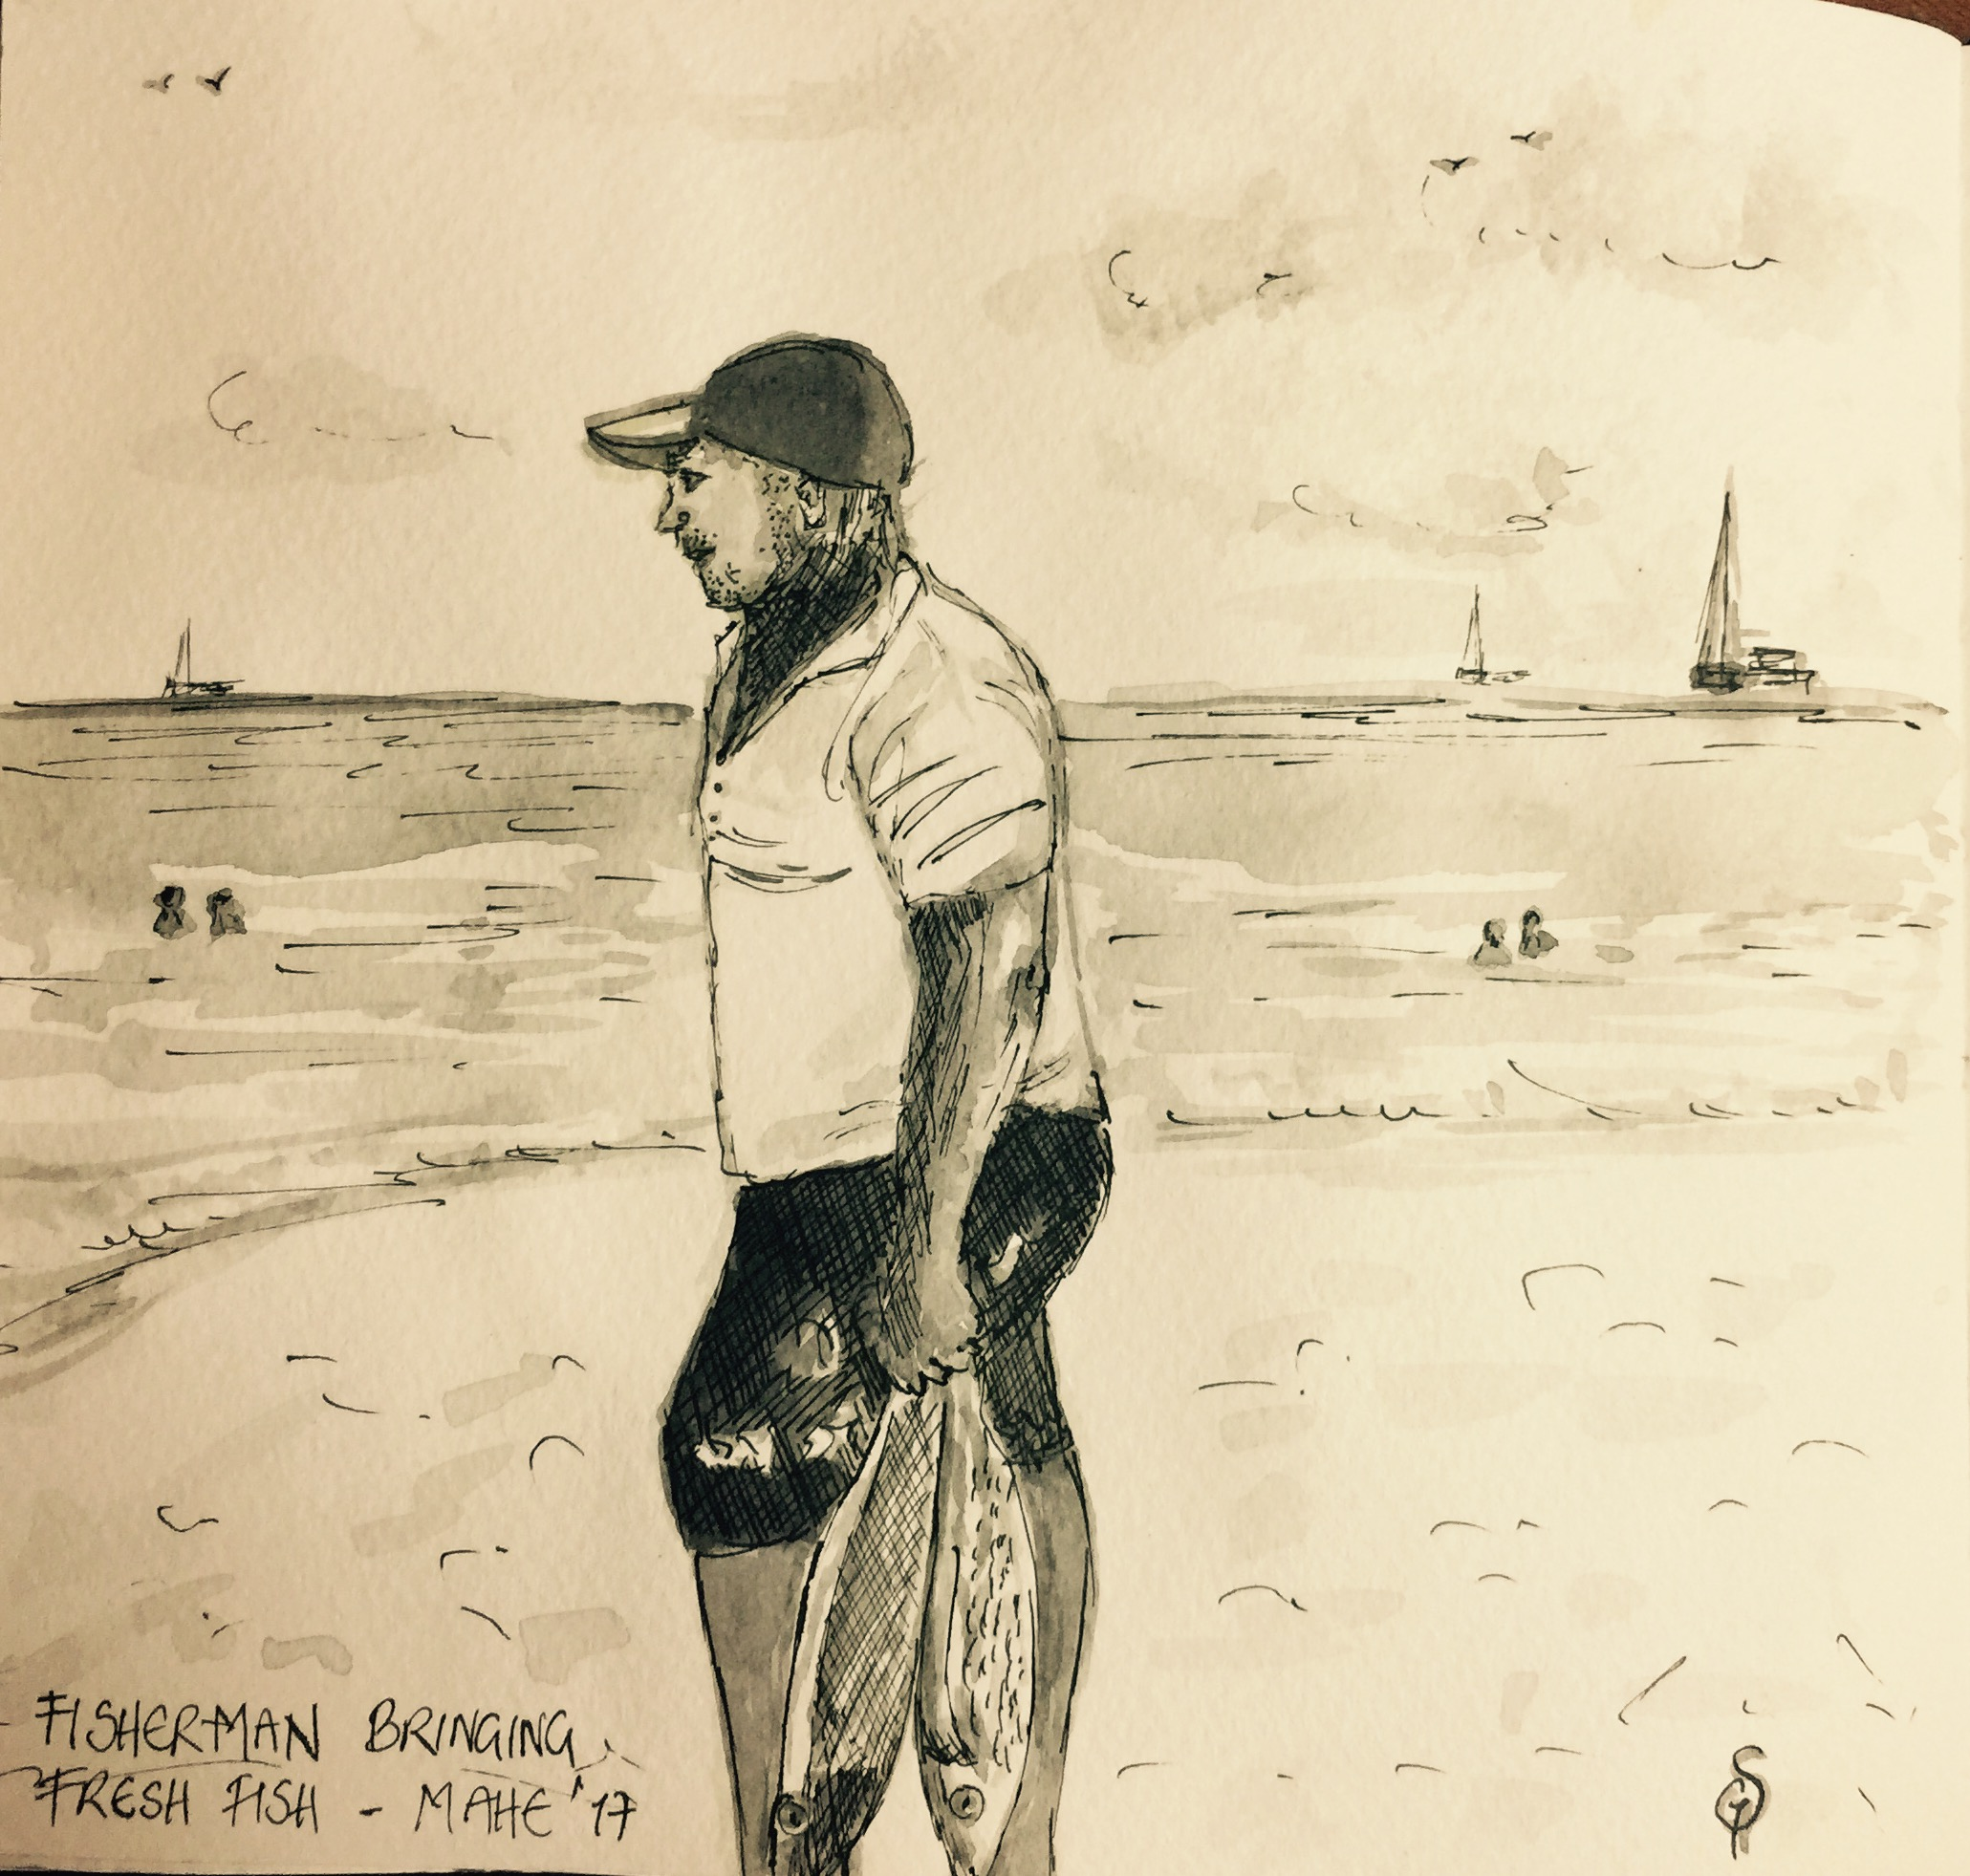 Fisherman - plein air sketch